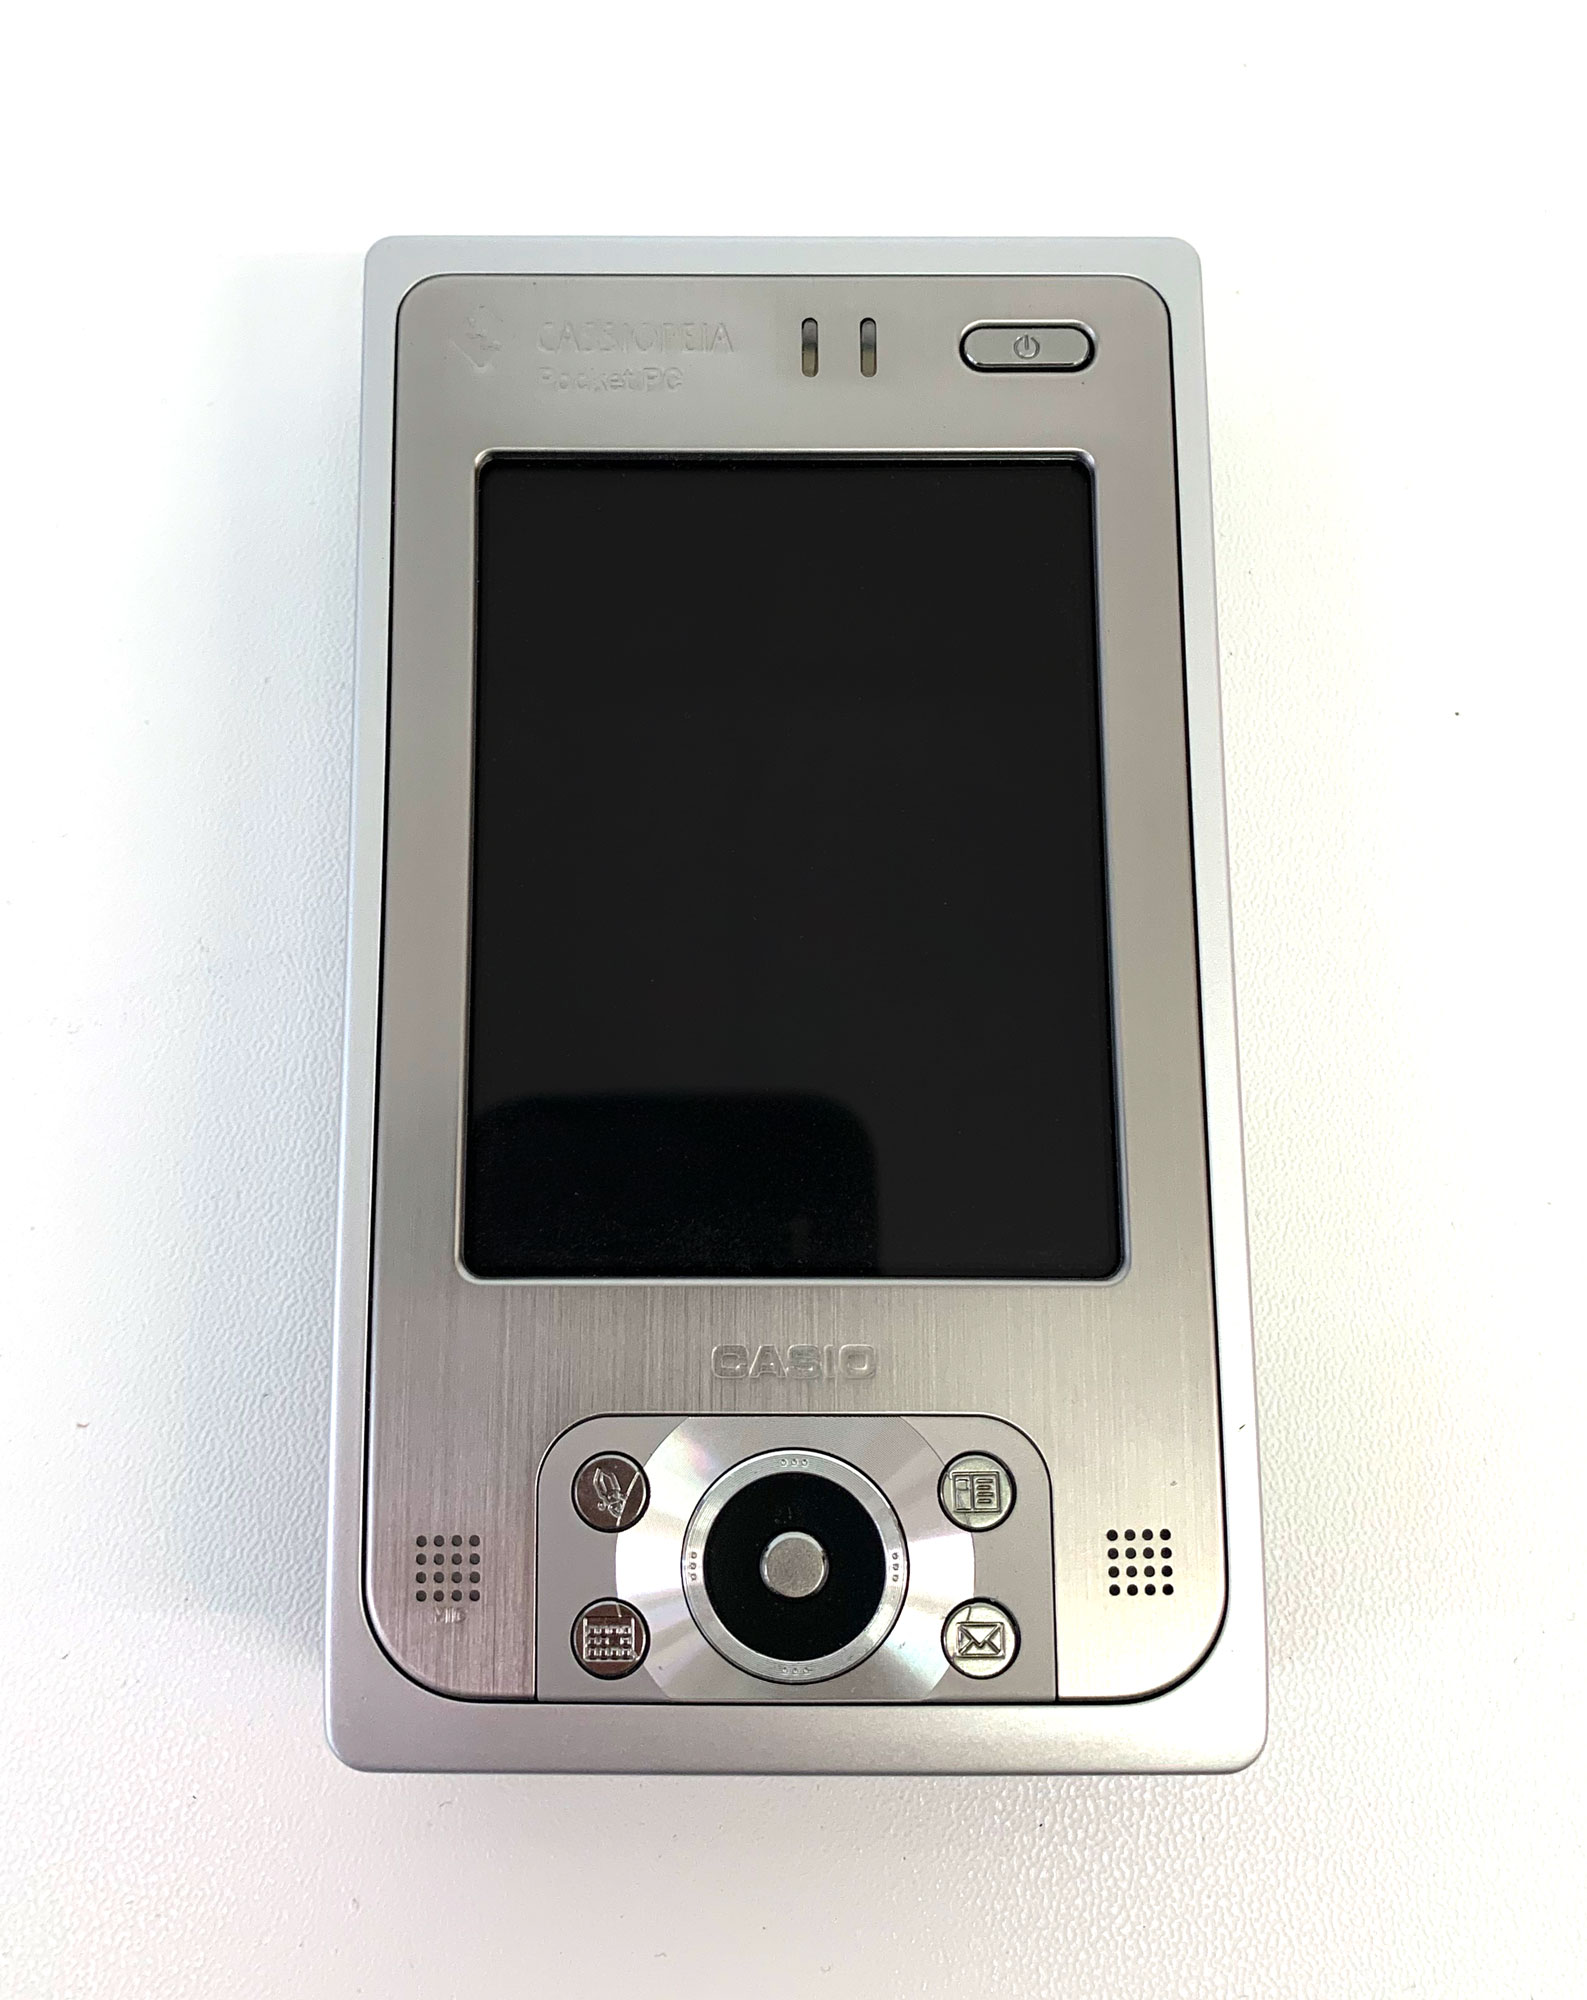 IT-10 - Pocket PC mit transreflektivem 3.7-Zoll TFT Display